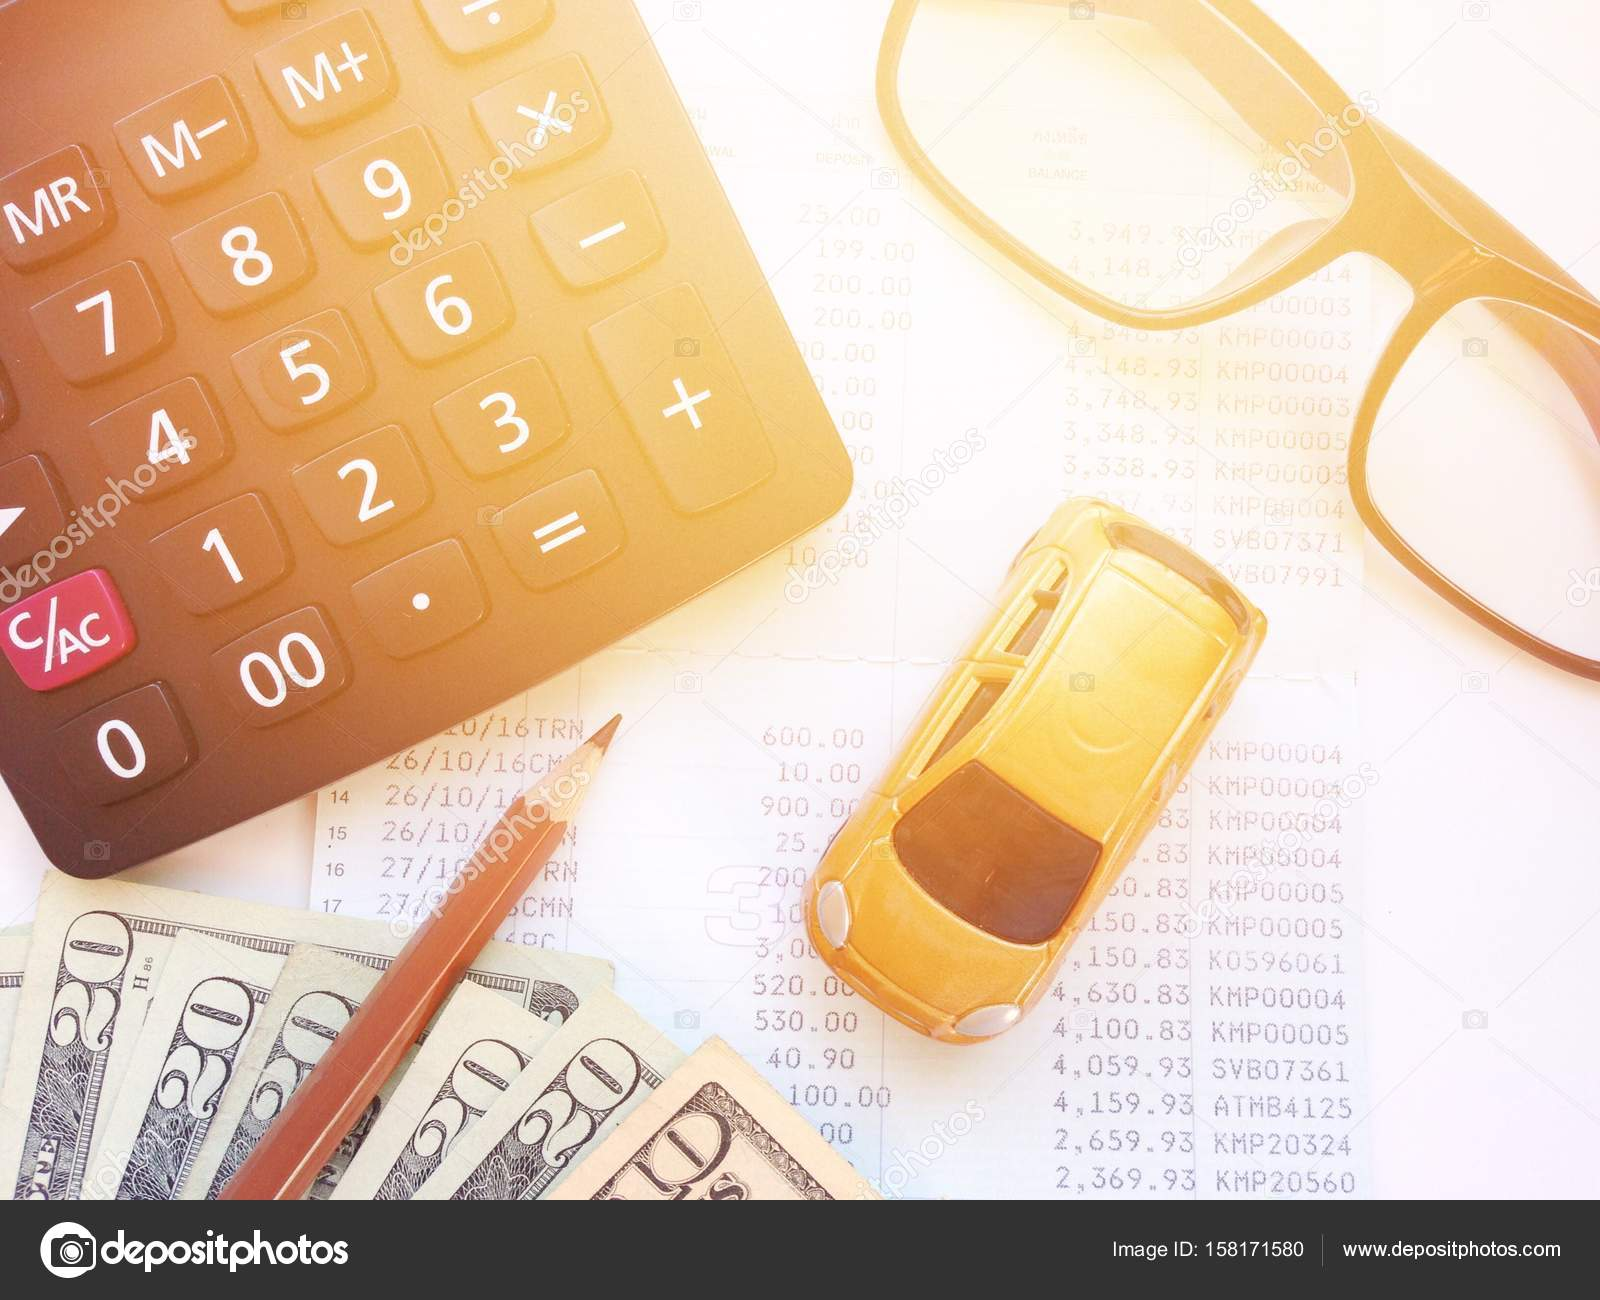 Miniature car model, pencil, calculator, eyeglasses, money and ...